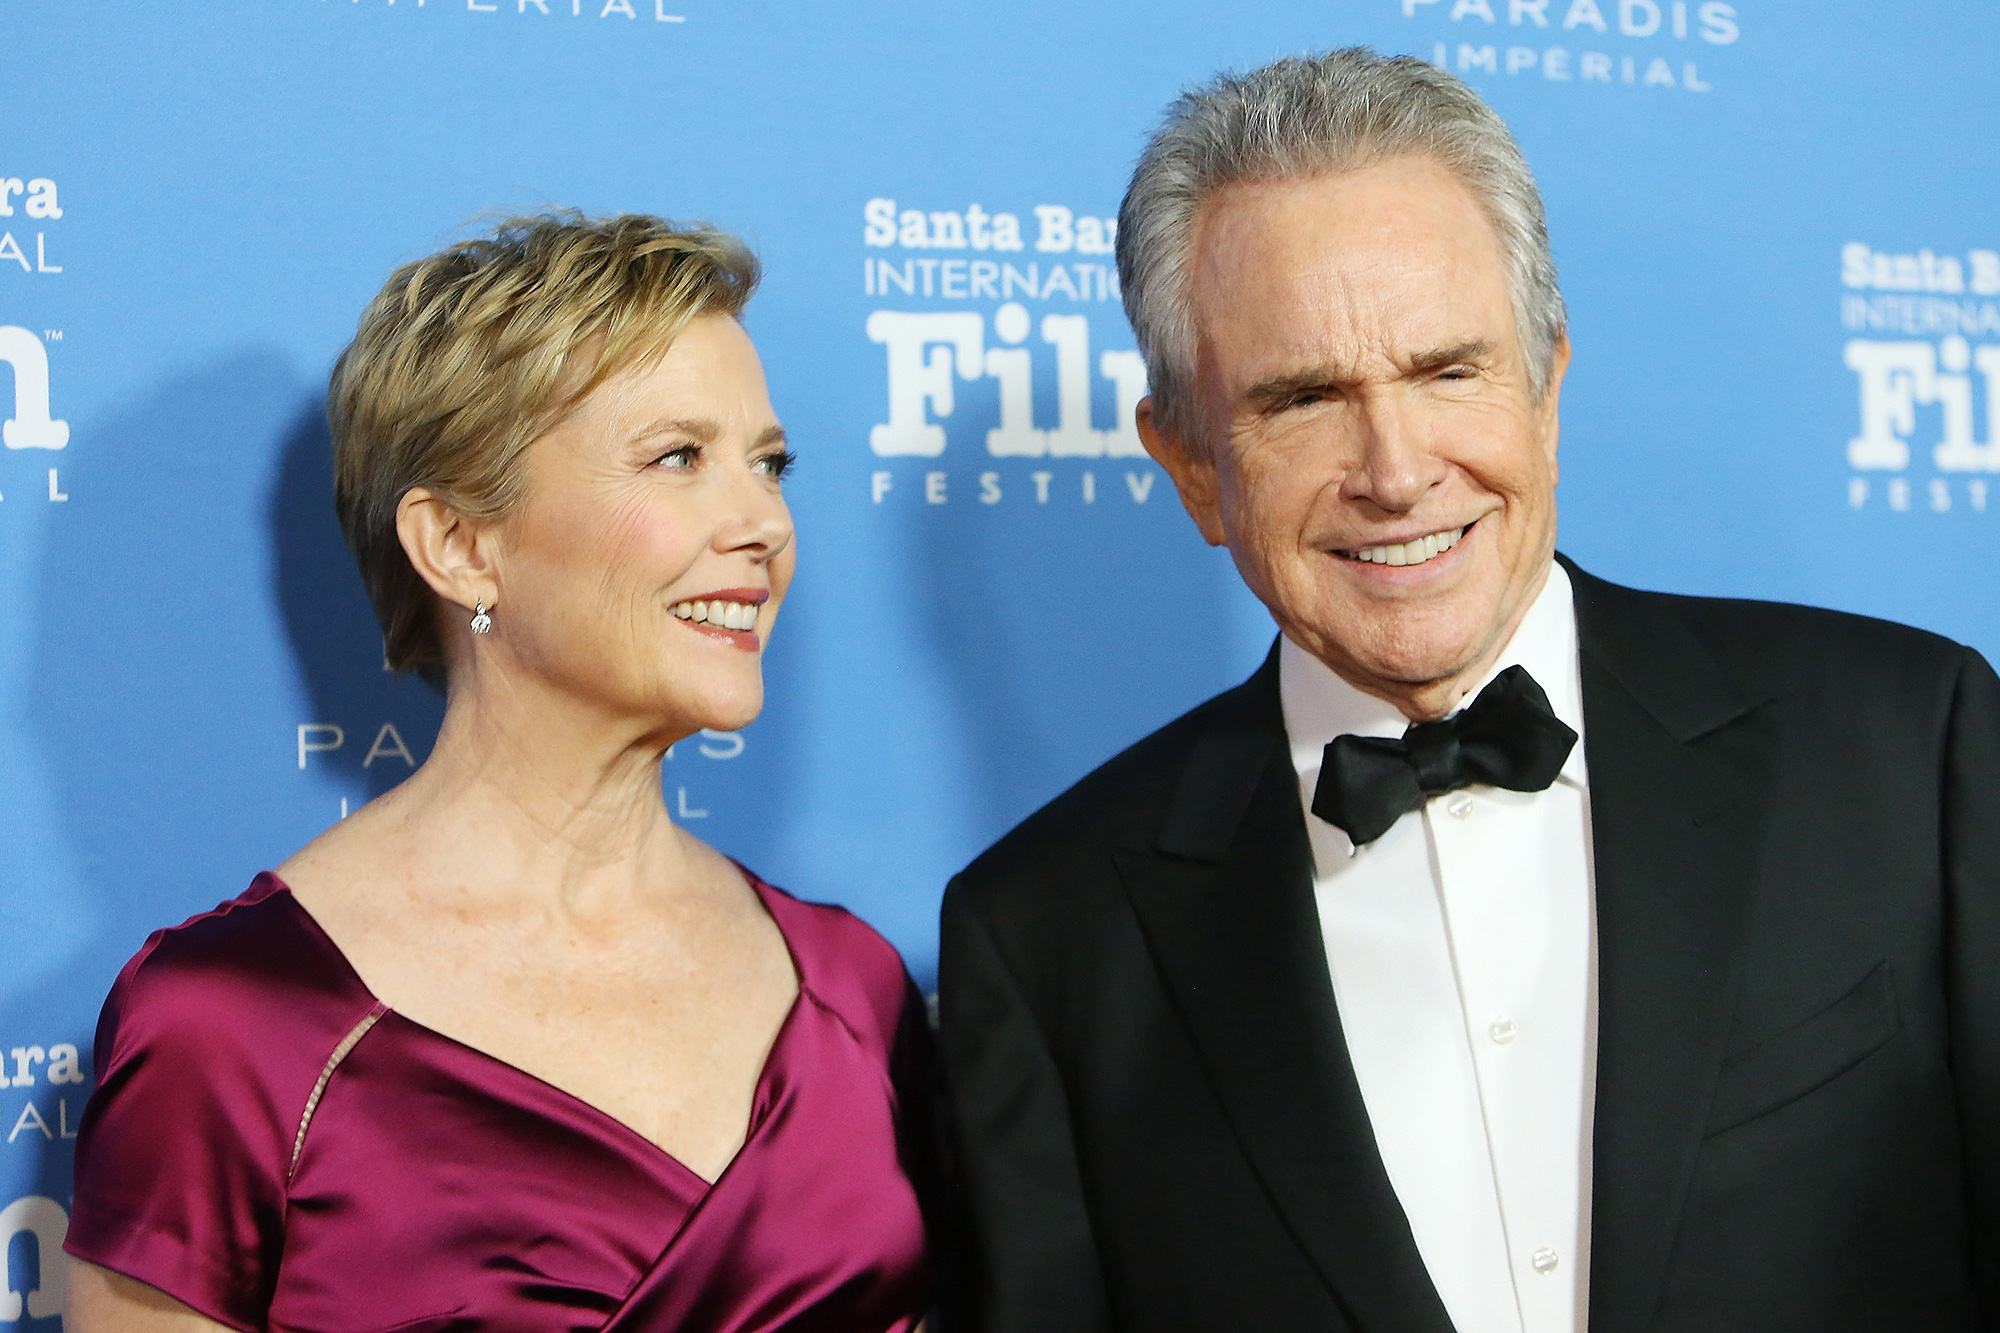 Santa Barbara International Film Festival Honors Warren Beatty With 11th Annual Kirk Douglas Award For Excellence In Film